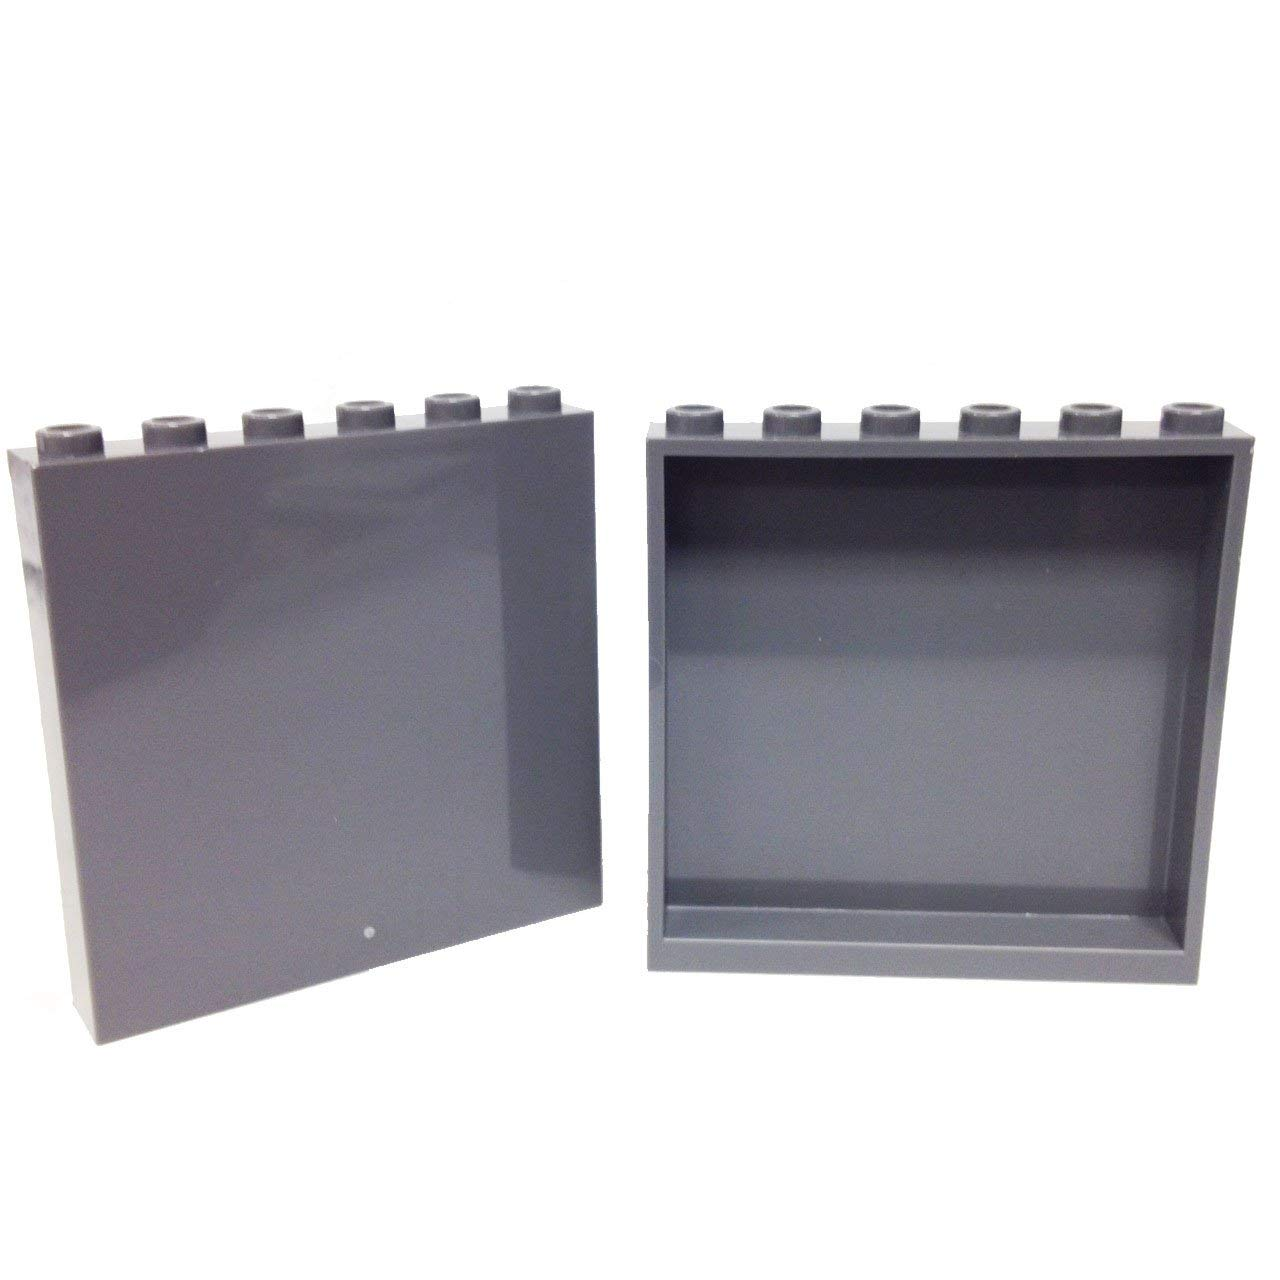 LEGO LOT OF 20 NEW BLACK PANELS 2 X 6 X 6 WITH WINDOW SLOT PIECES